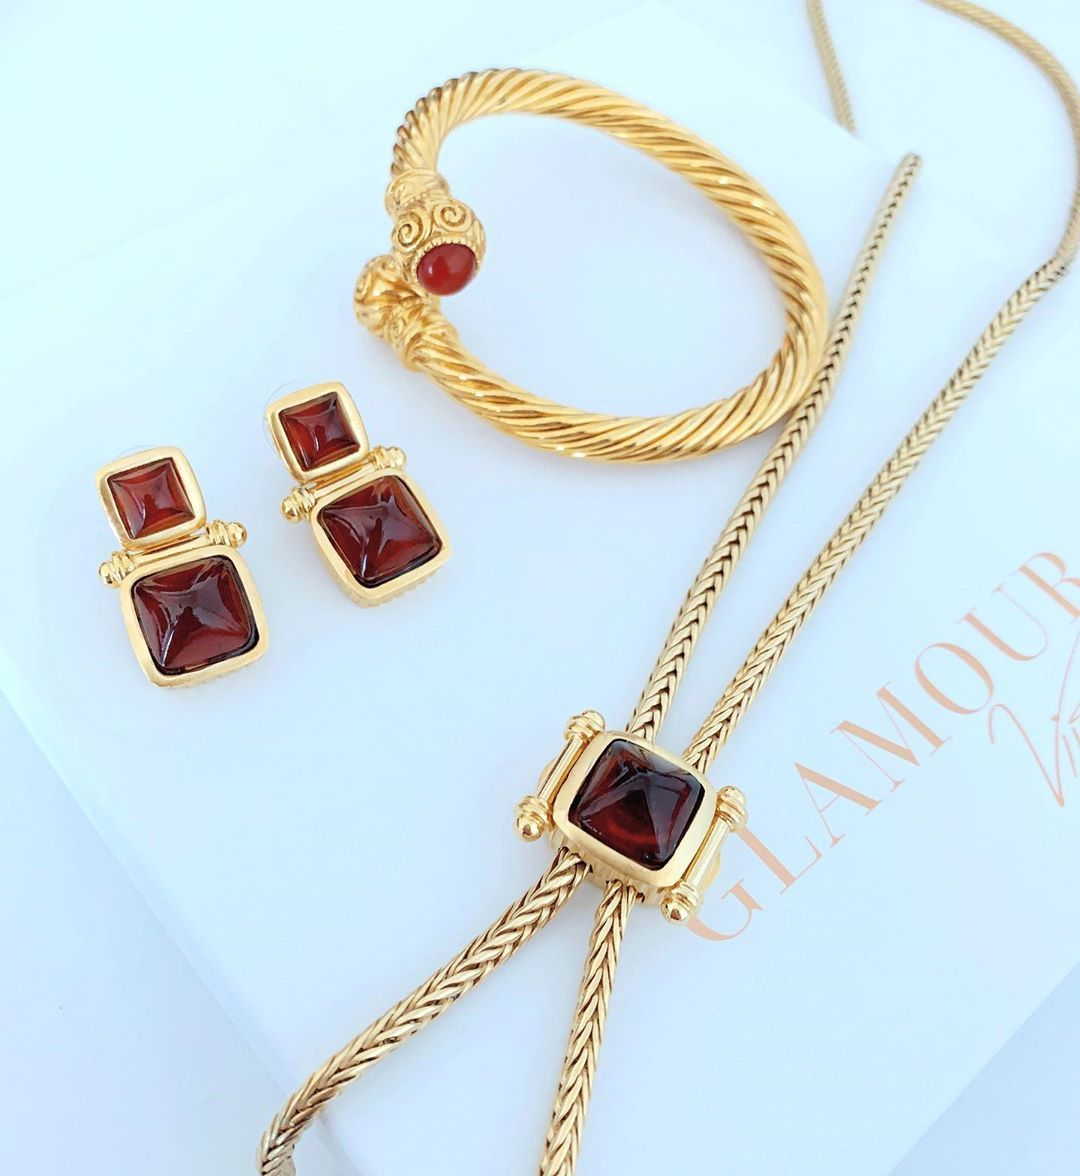 Sold Eid Collection For Your Orders Dm Or Watsapp 00971551600452 Cash On Delivery For Clients 2 3 Working Days For Gold Necklace Jewelry Necklace